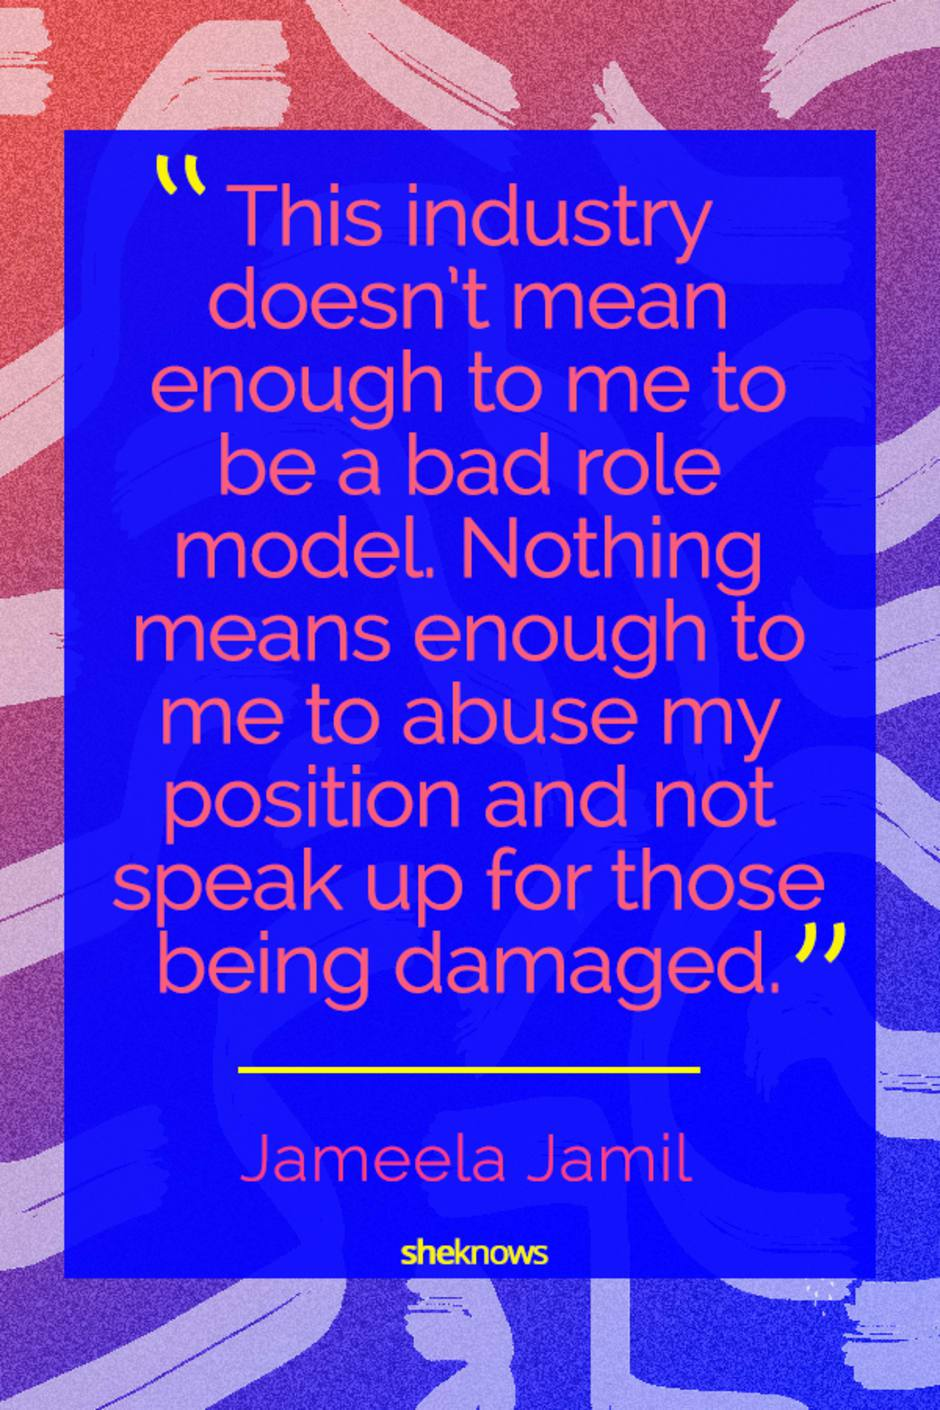 jameela jamil quote 1 fofzsp png Jameela Jamils  I Weigh Movement Is Changing How We See Our Bodies